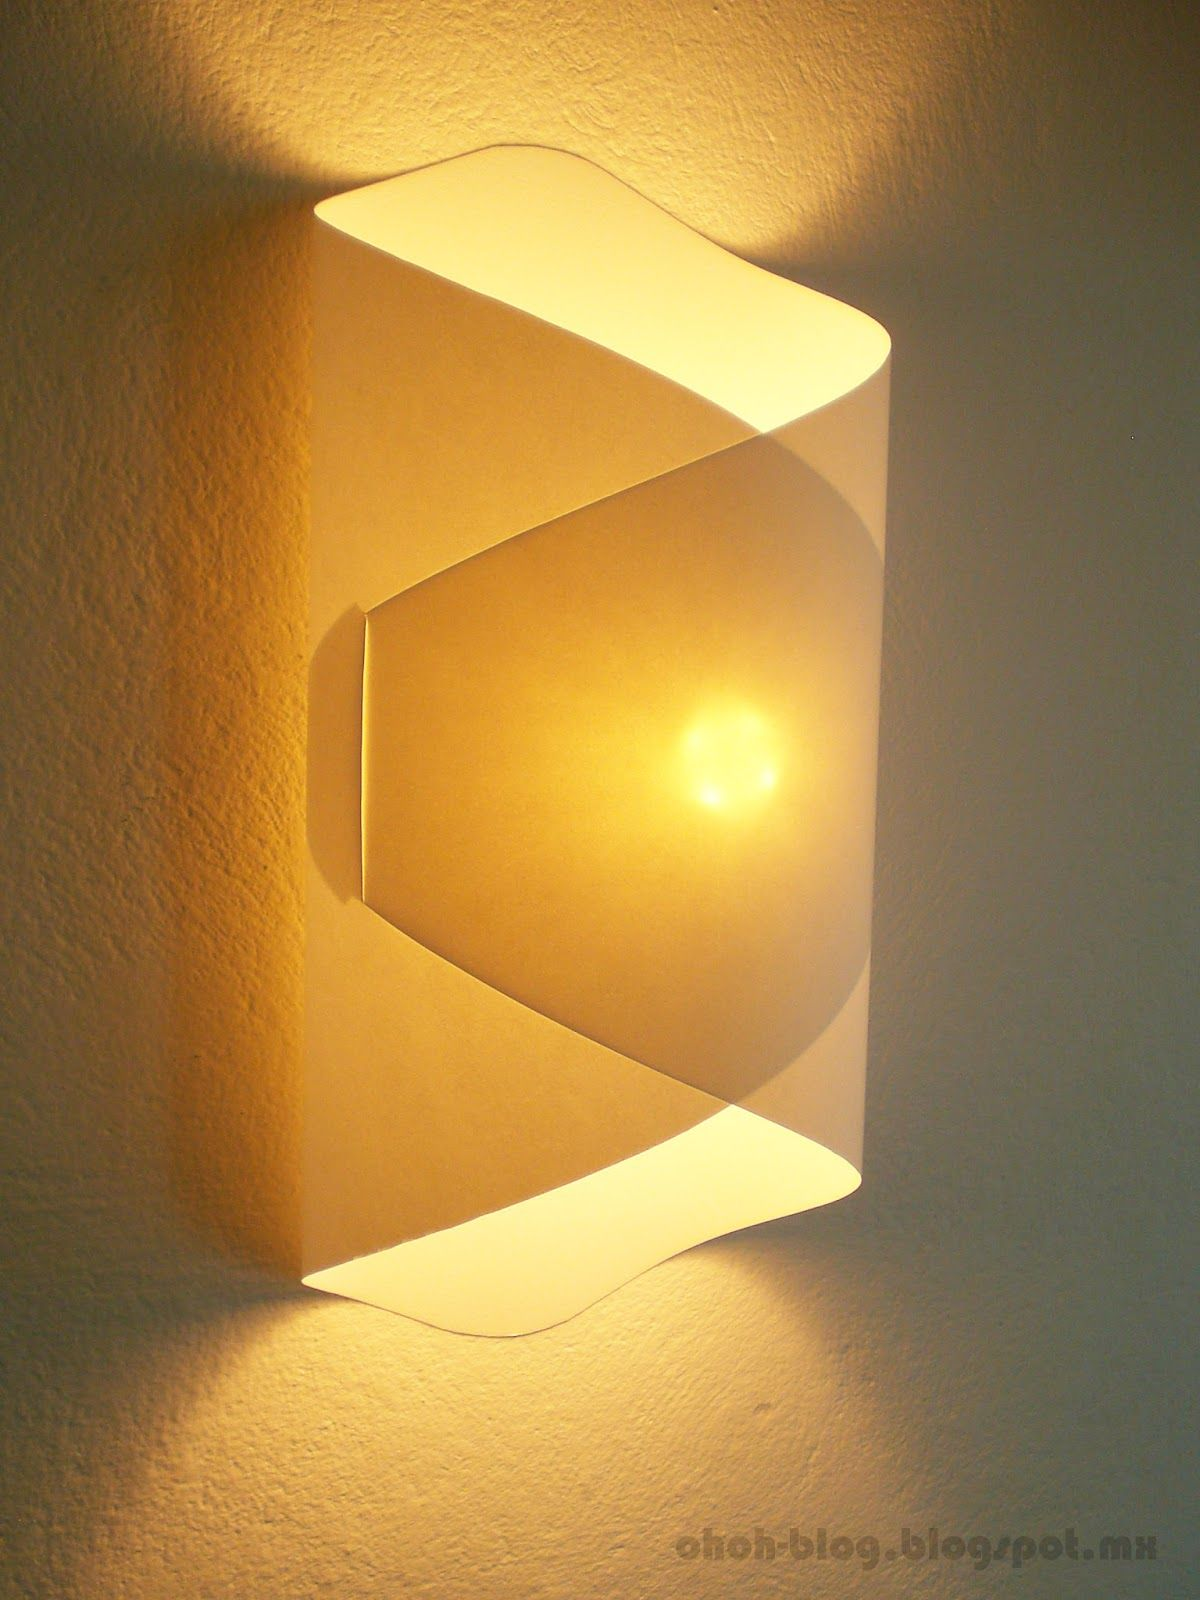 diy paper lamp lampara de papel recycle diy diy paper lighting rh pinterest com